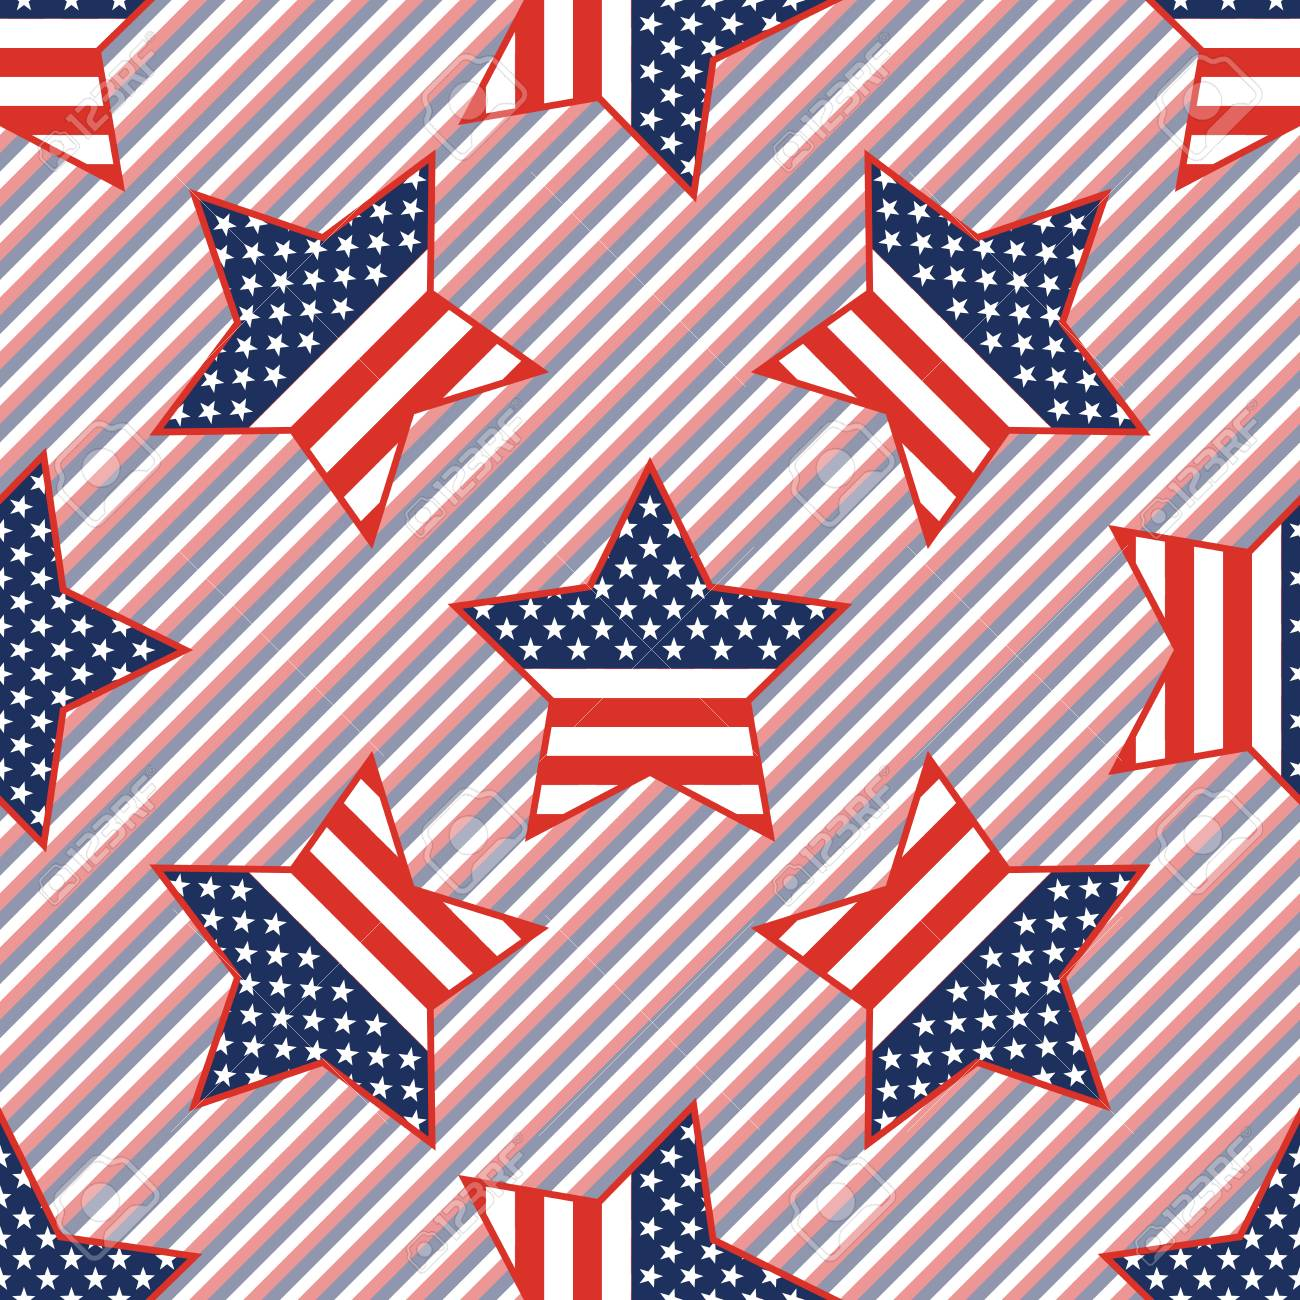 USA patriotic stars seamless pattern on red and blue stripes background. American patriotic wallpaper,